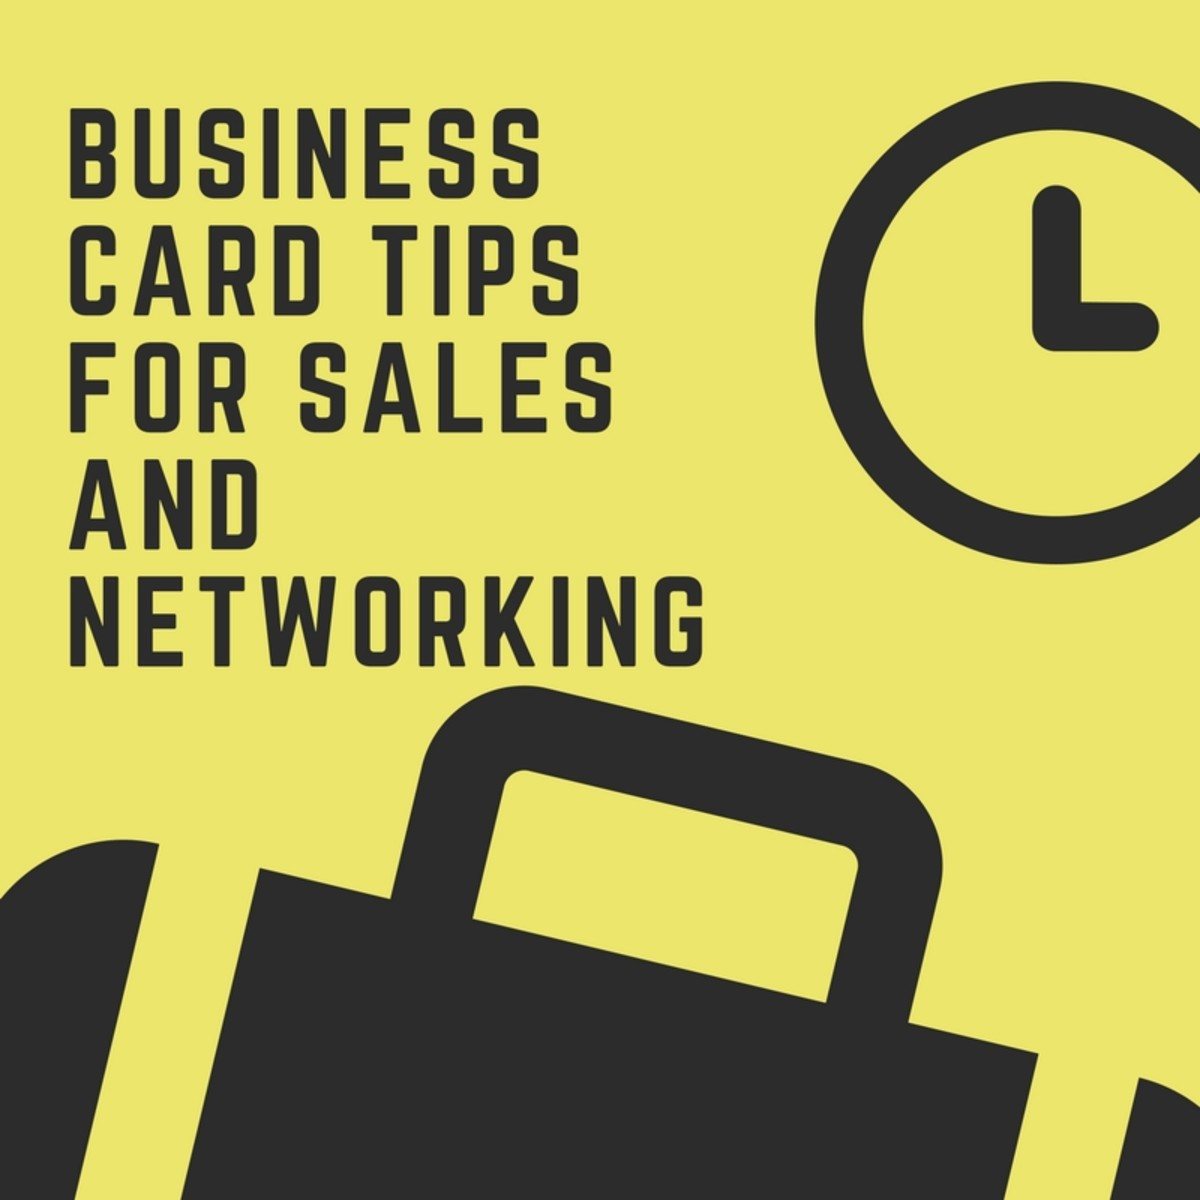 business-card-tips-for-sales-and-networking